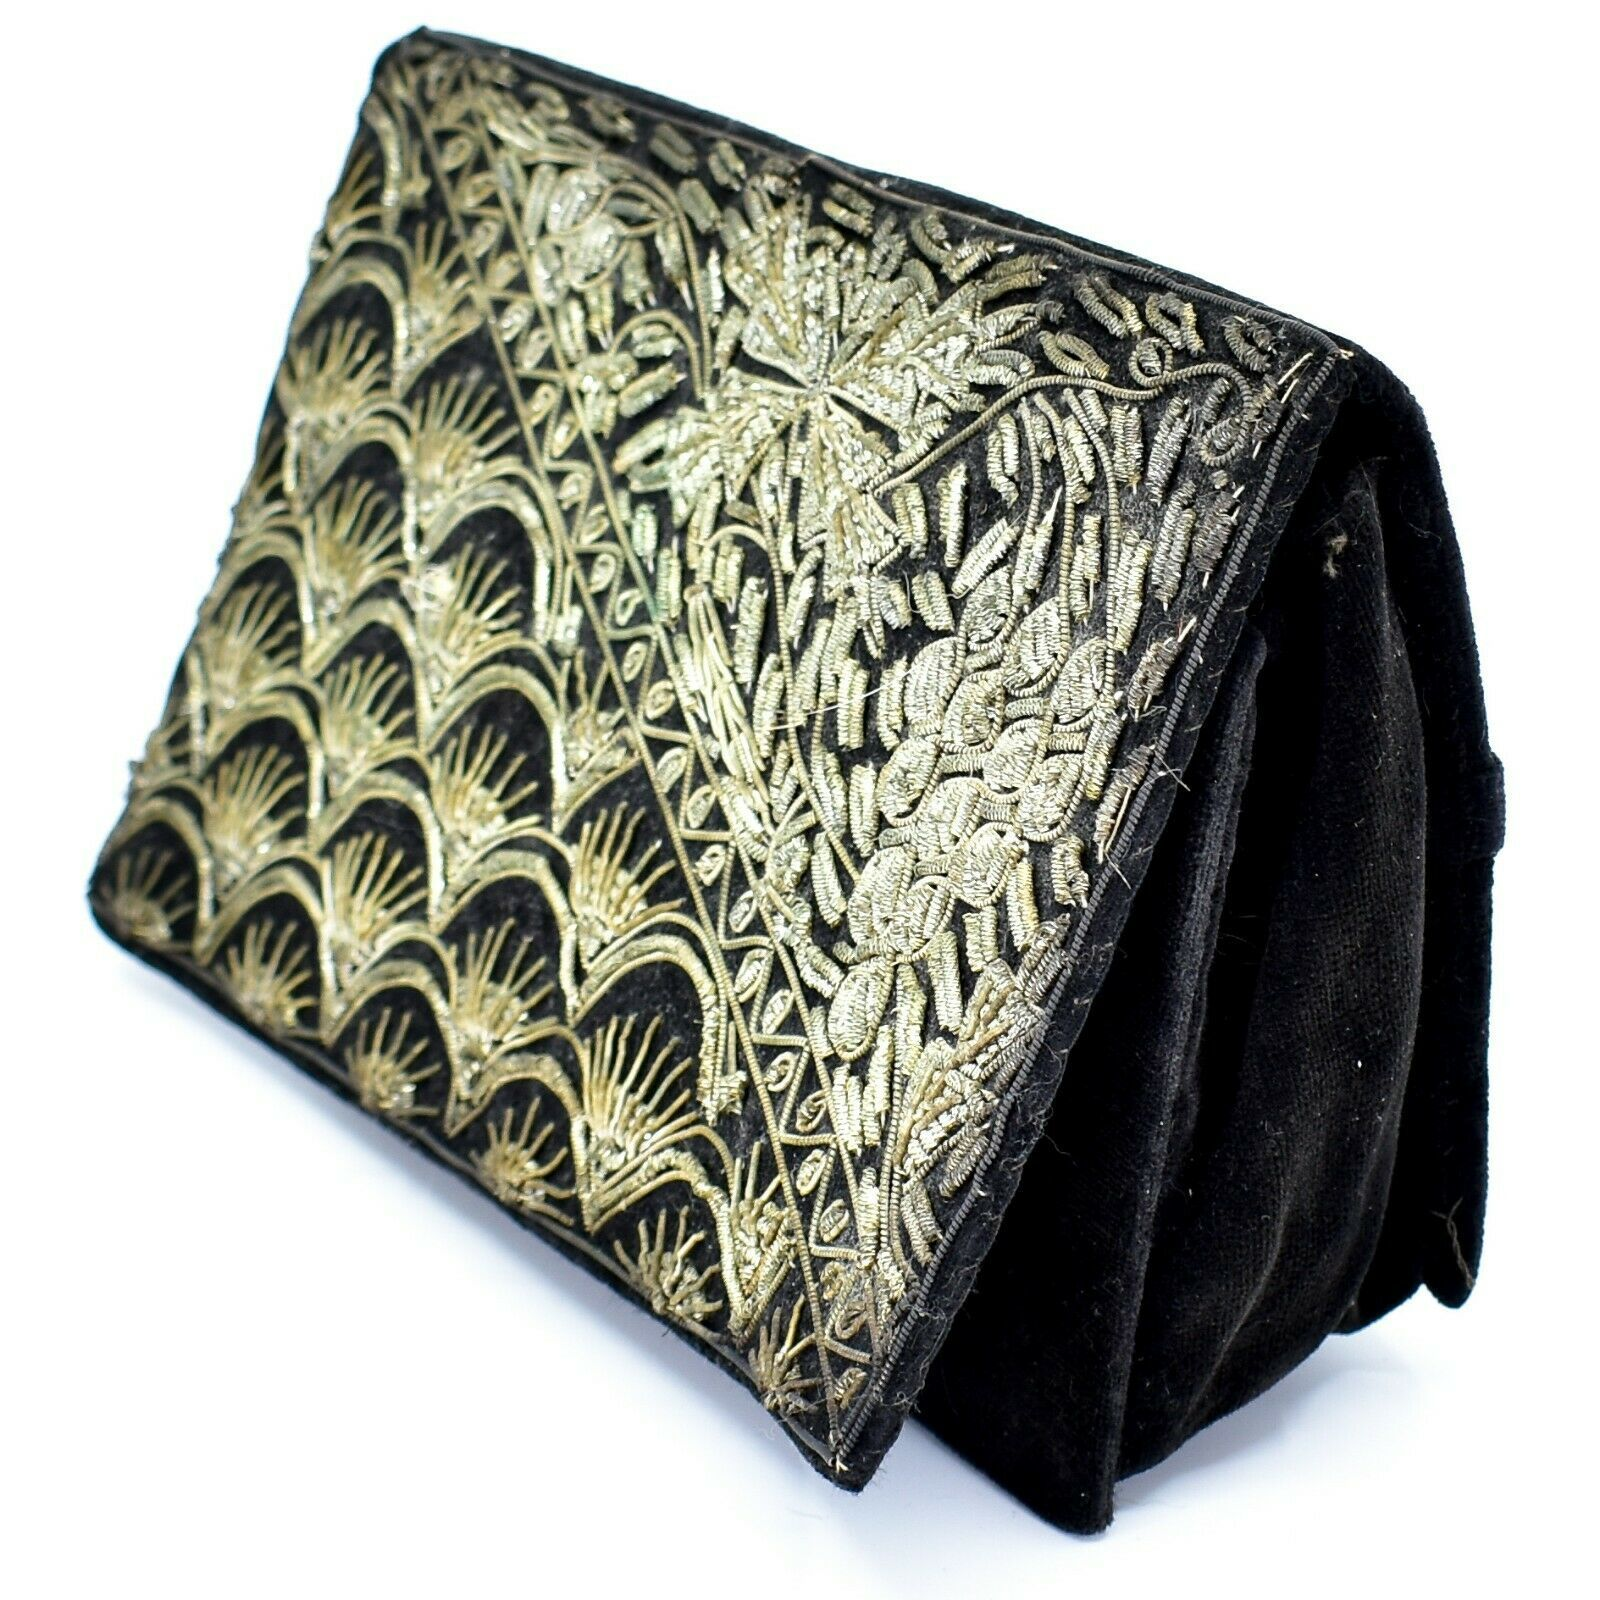 Vintage Black Velvet Gold Metallic Embroidered Purse Clutch Handmade in India